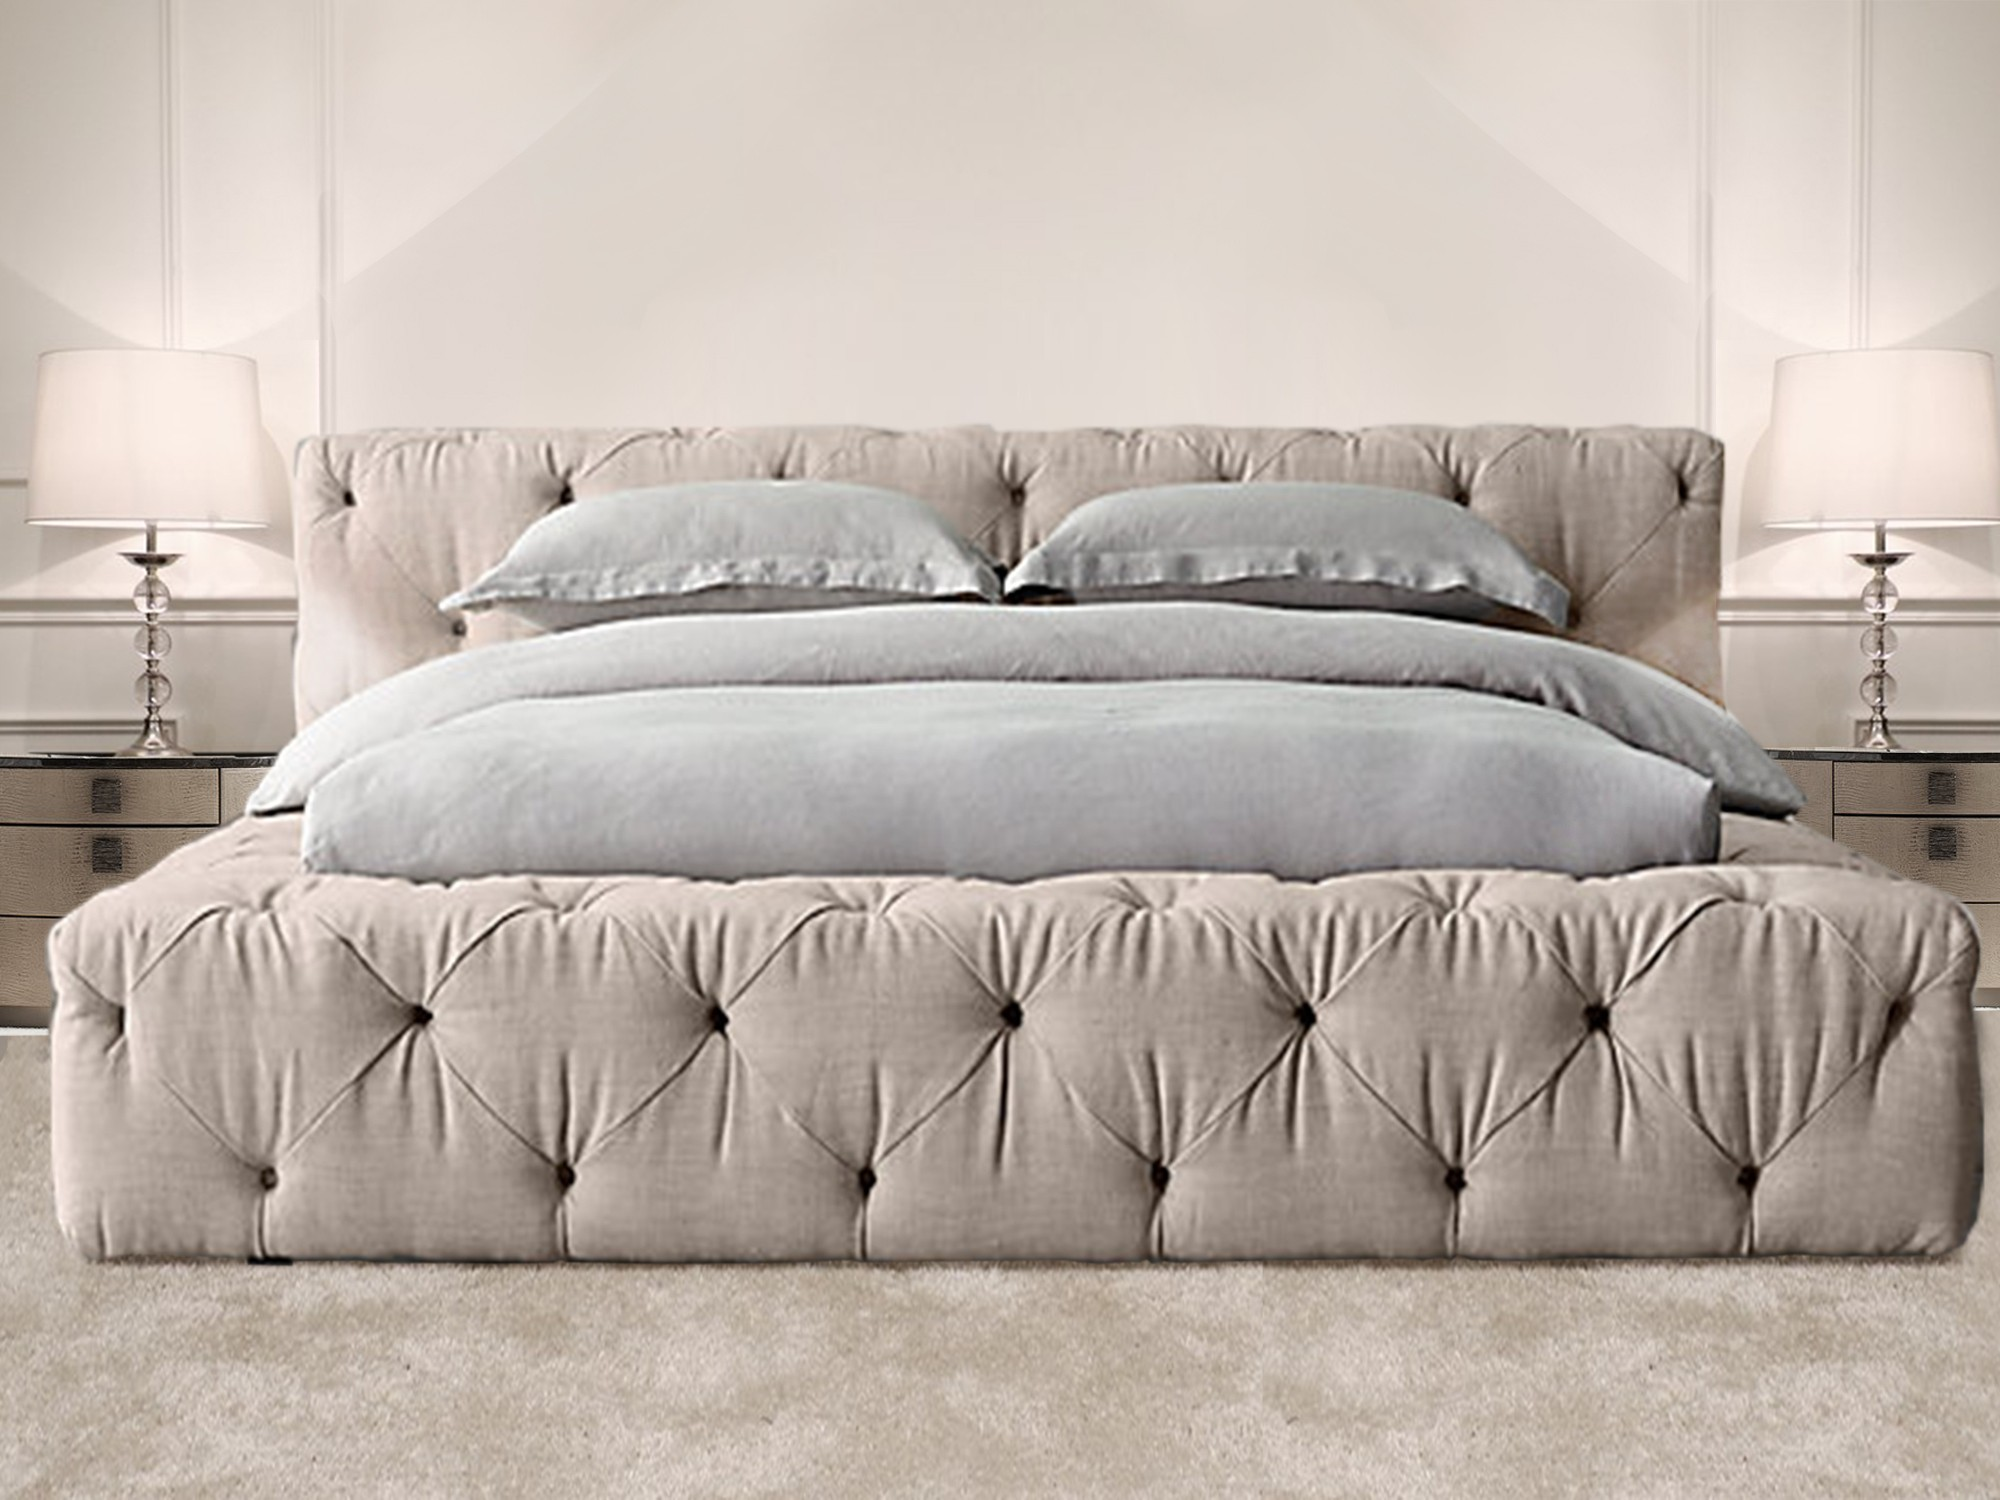 The Chesterfield Bed Hadley Rose